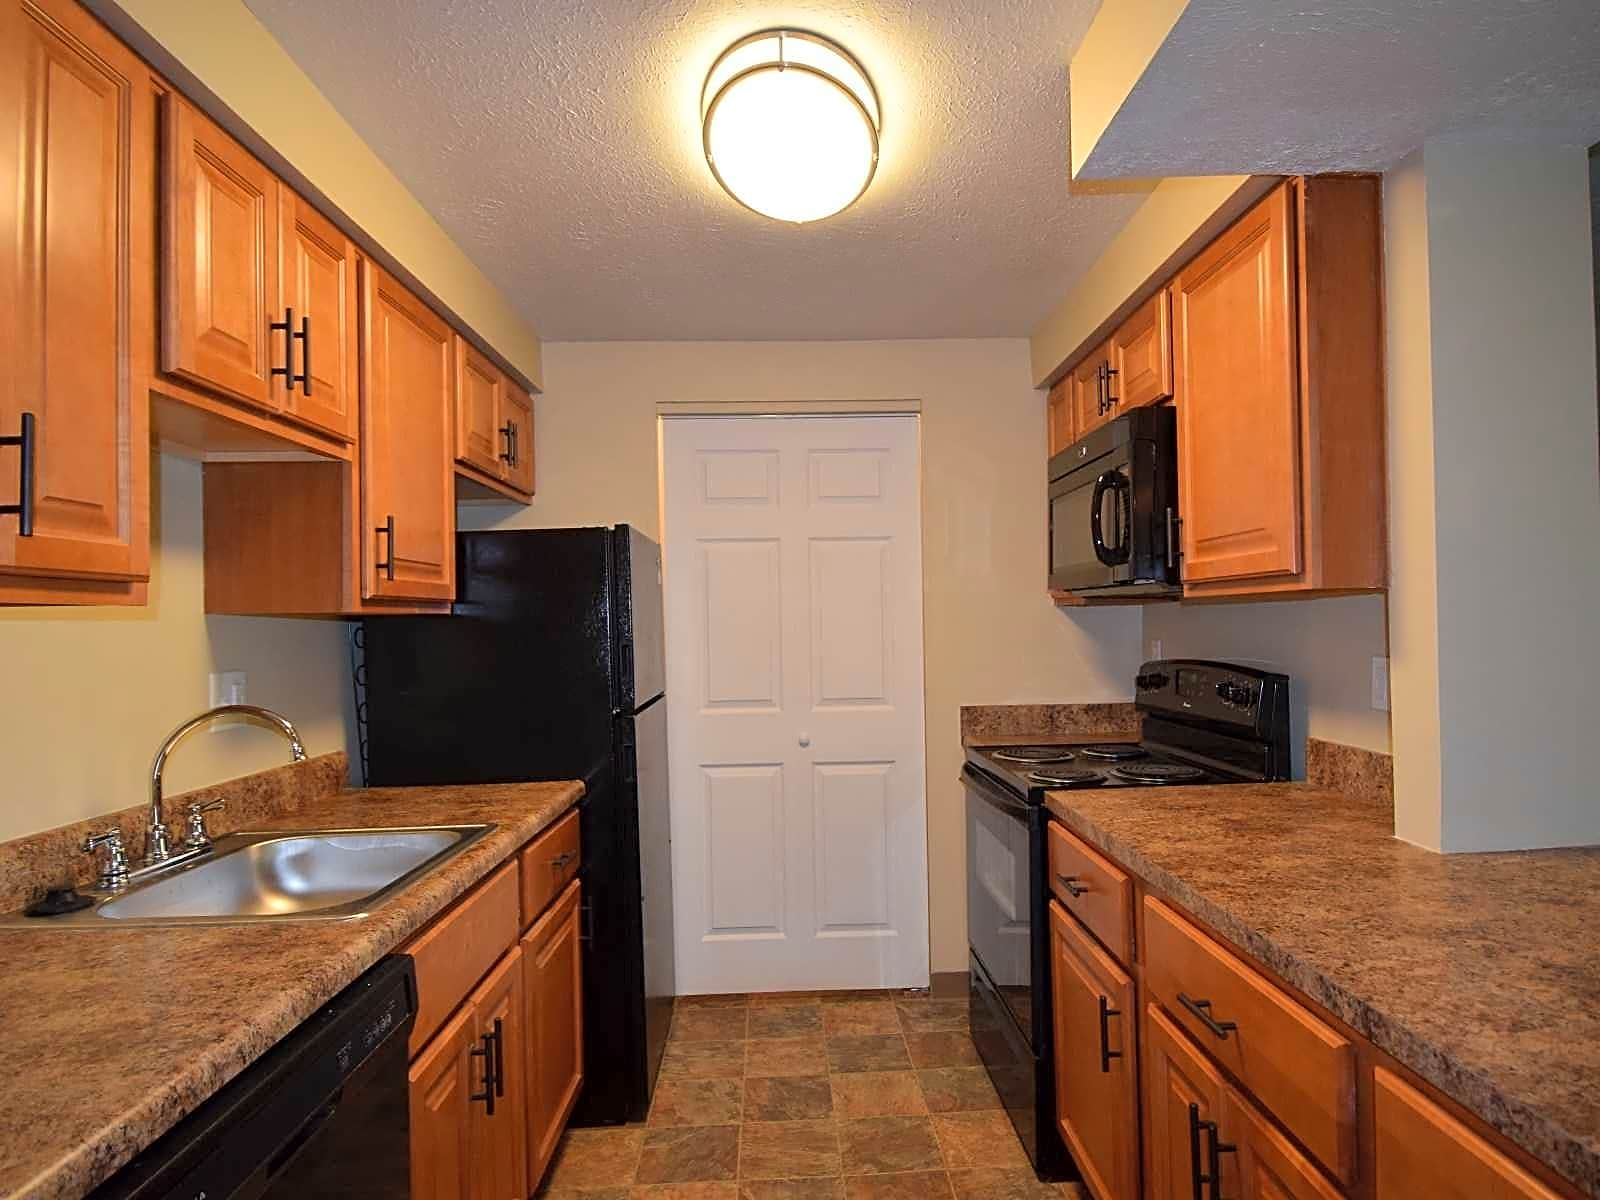 Apartments Near Seton Hill Deauville Park for Seton Hill University Students in Greensburg, PA